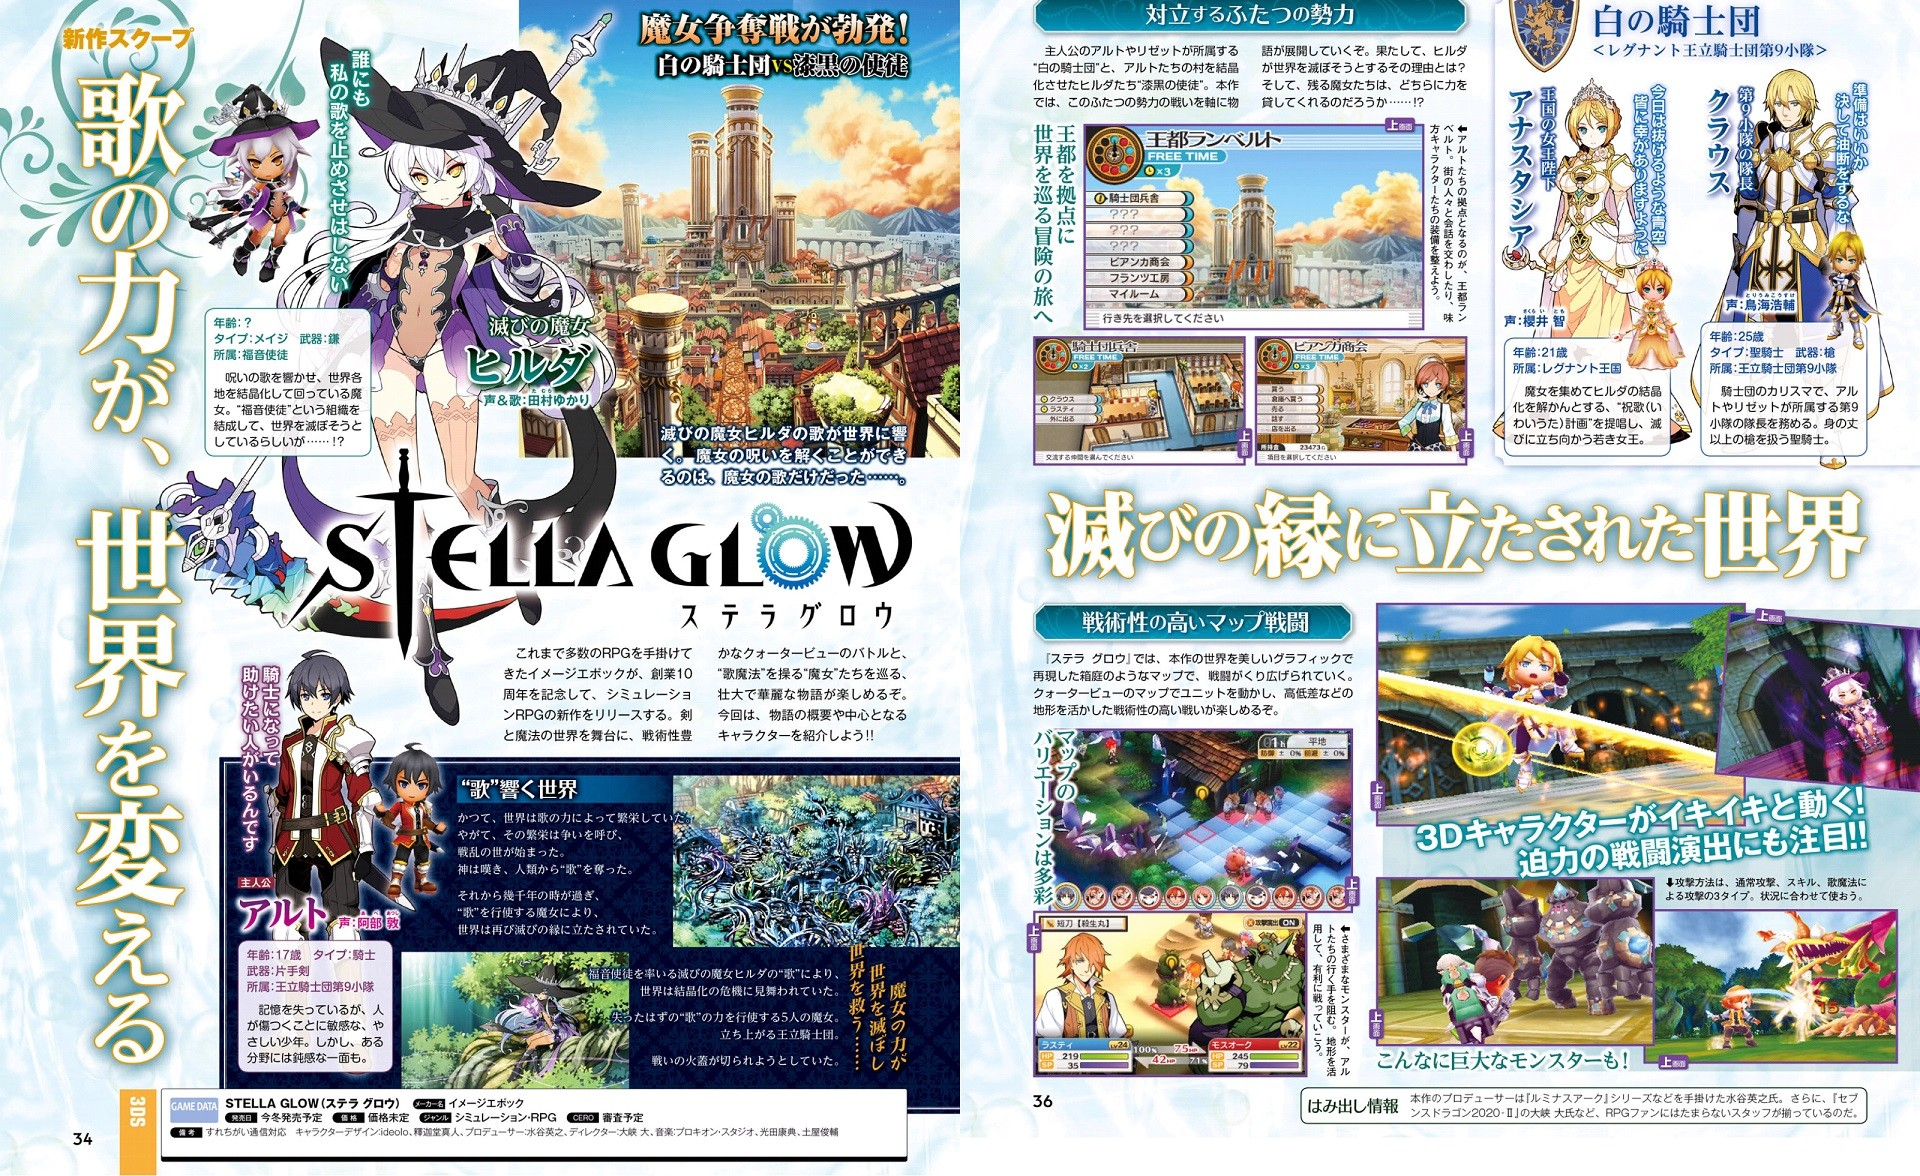 1920x1176 Stella Glow Nintendo 3DS Scans, images - Legendra RPG